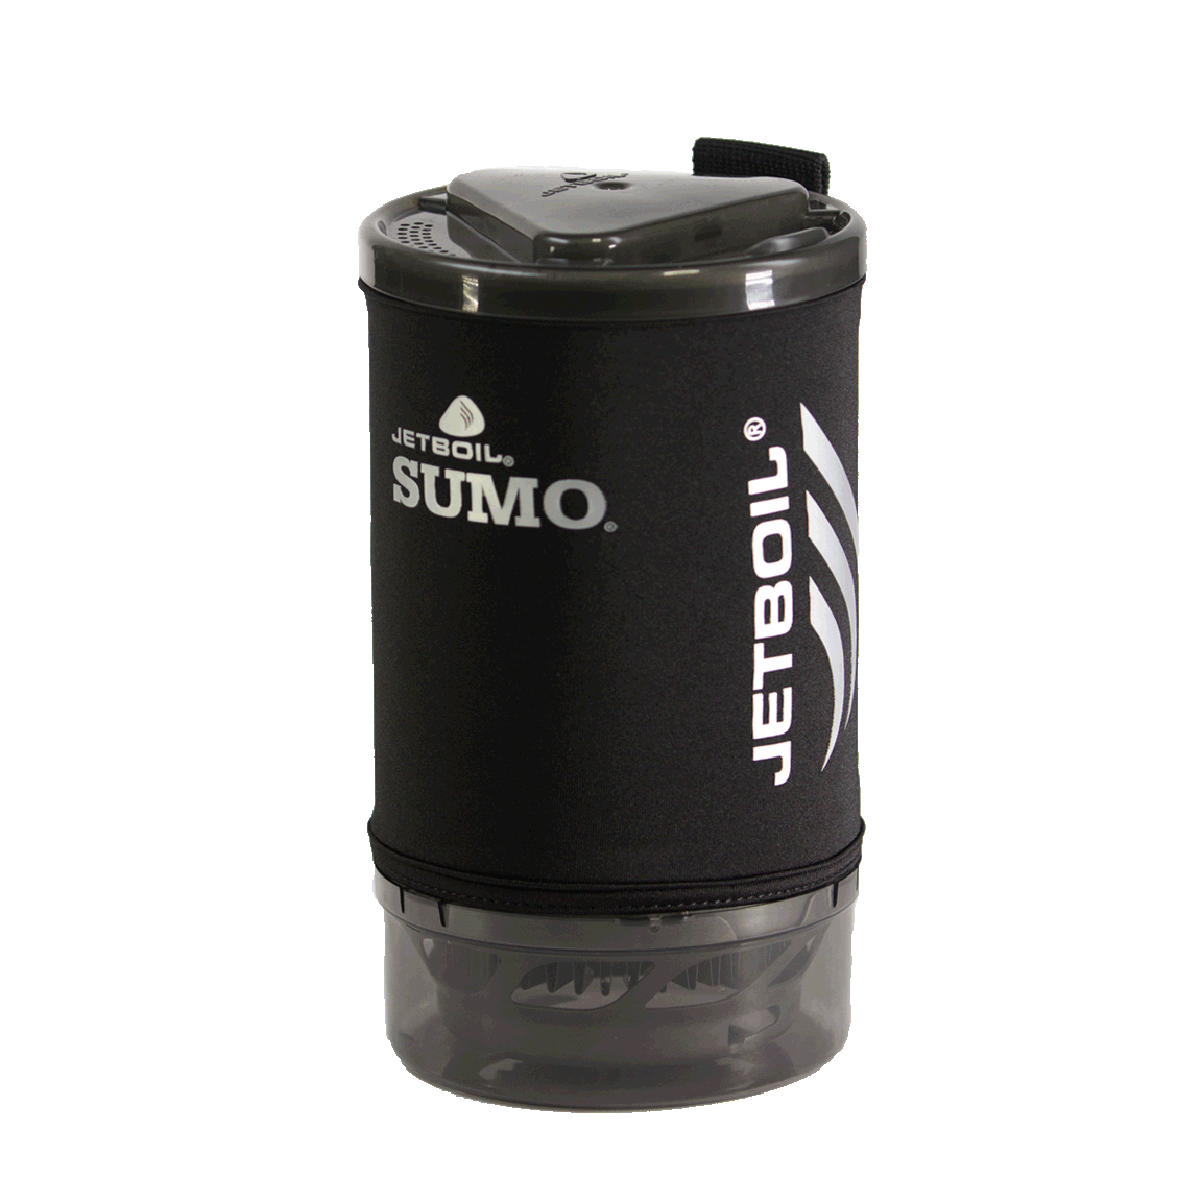 Amity 5l Pendant Brushed Chrome: Jetboil Cooking System